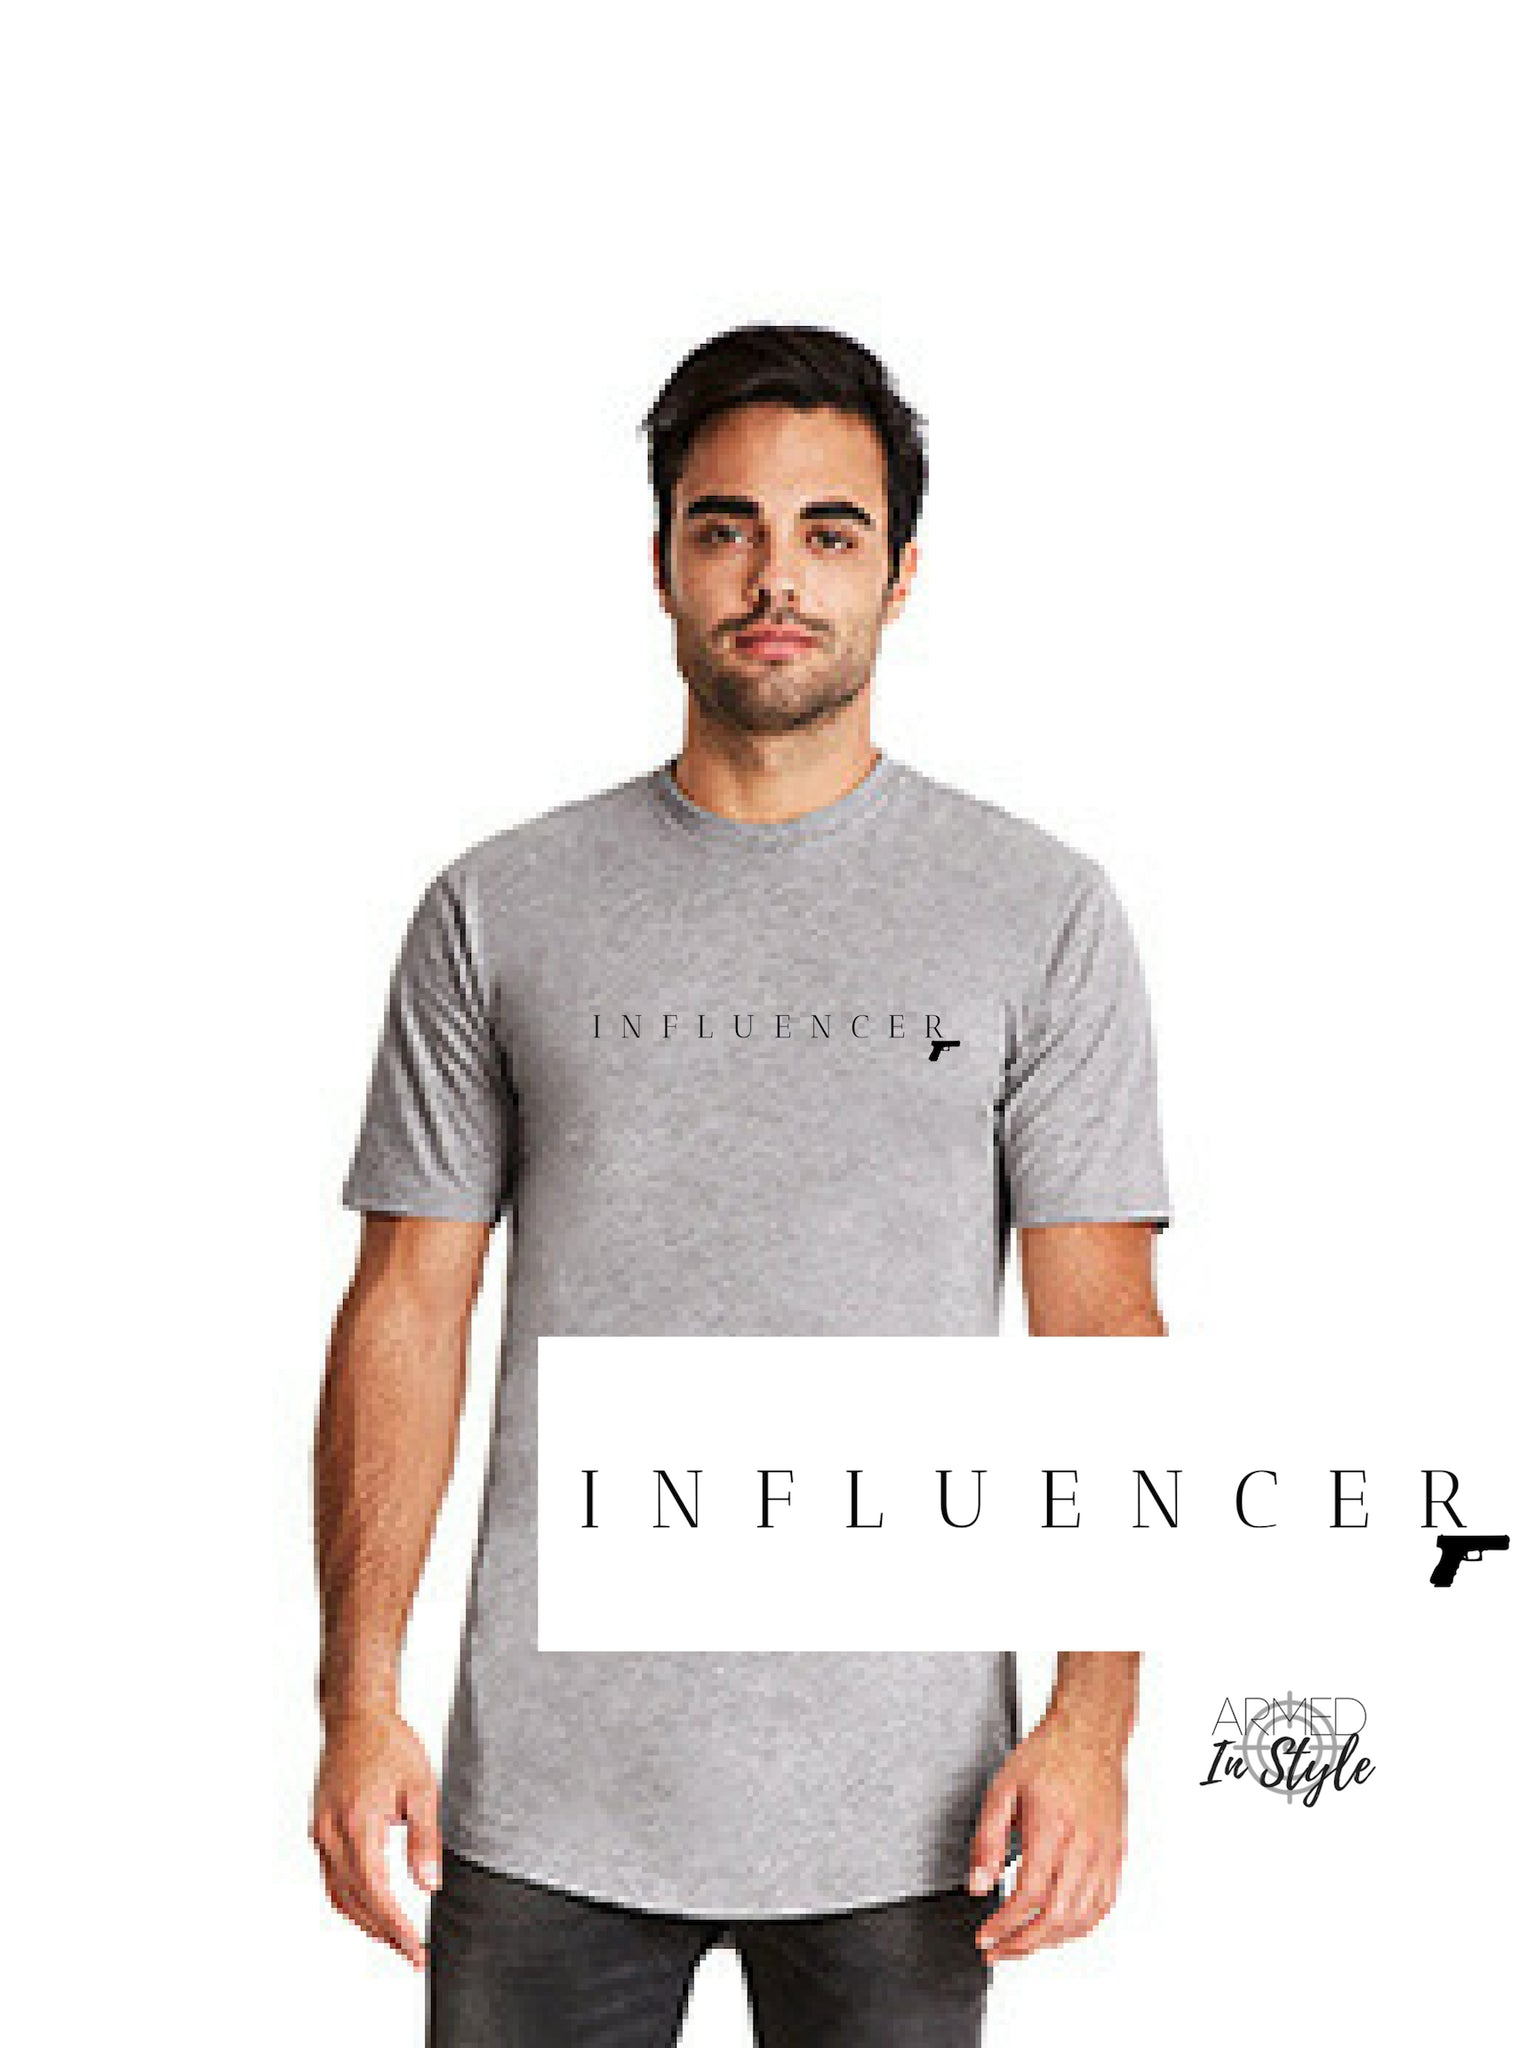 Influencer Pistol, Men's Urban T-Shirt